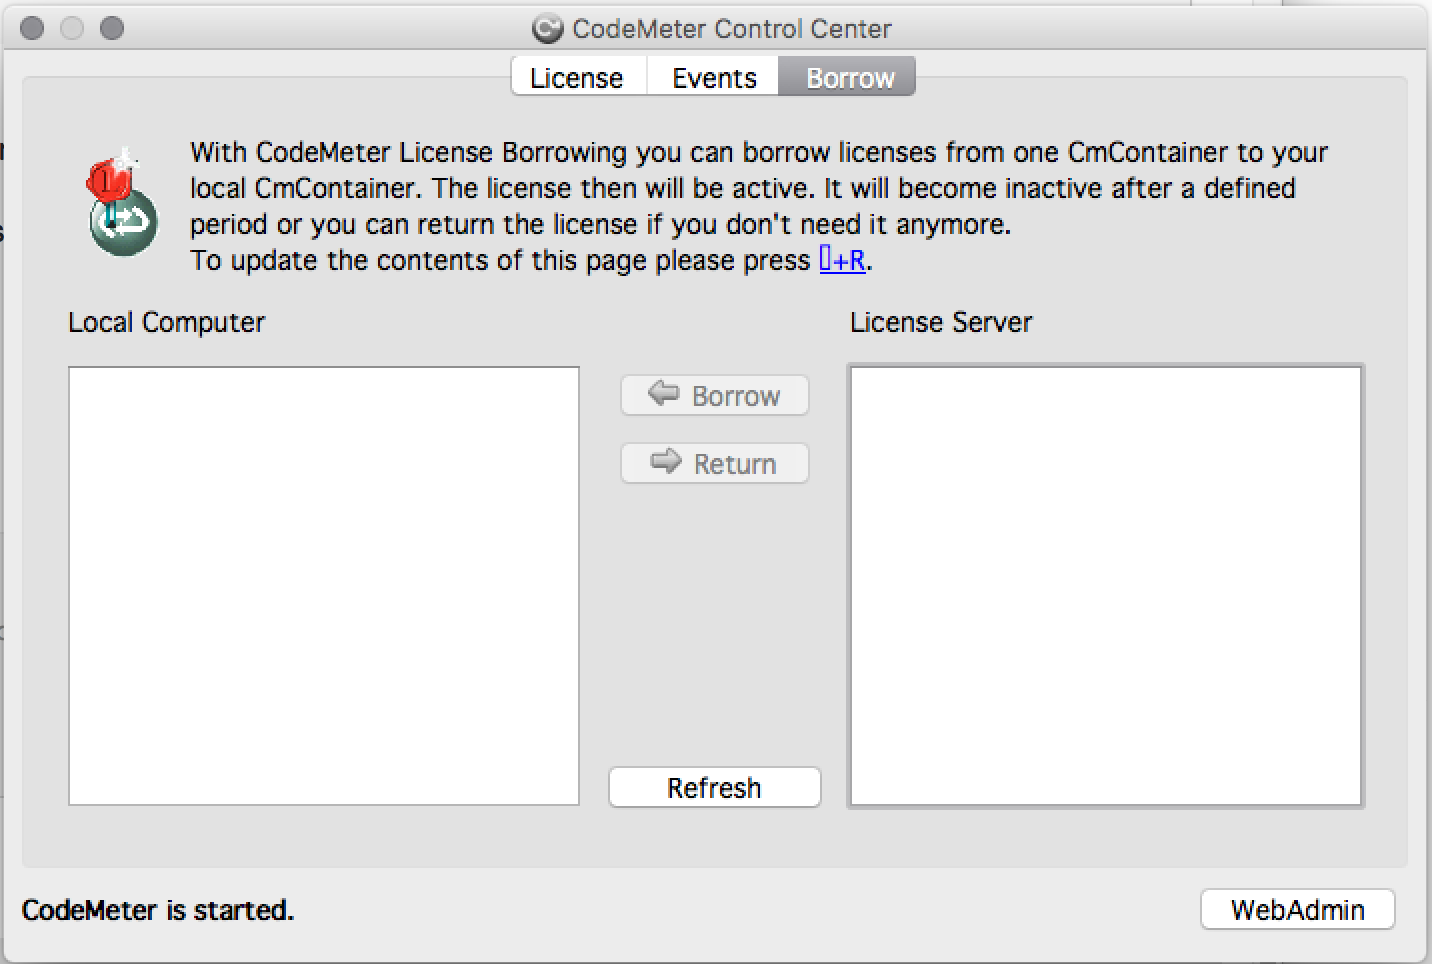 New app found on my Mac - Code Meter Control Center - Mac